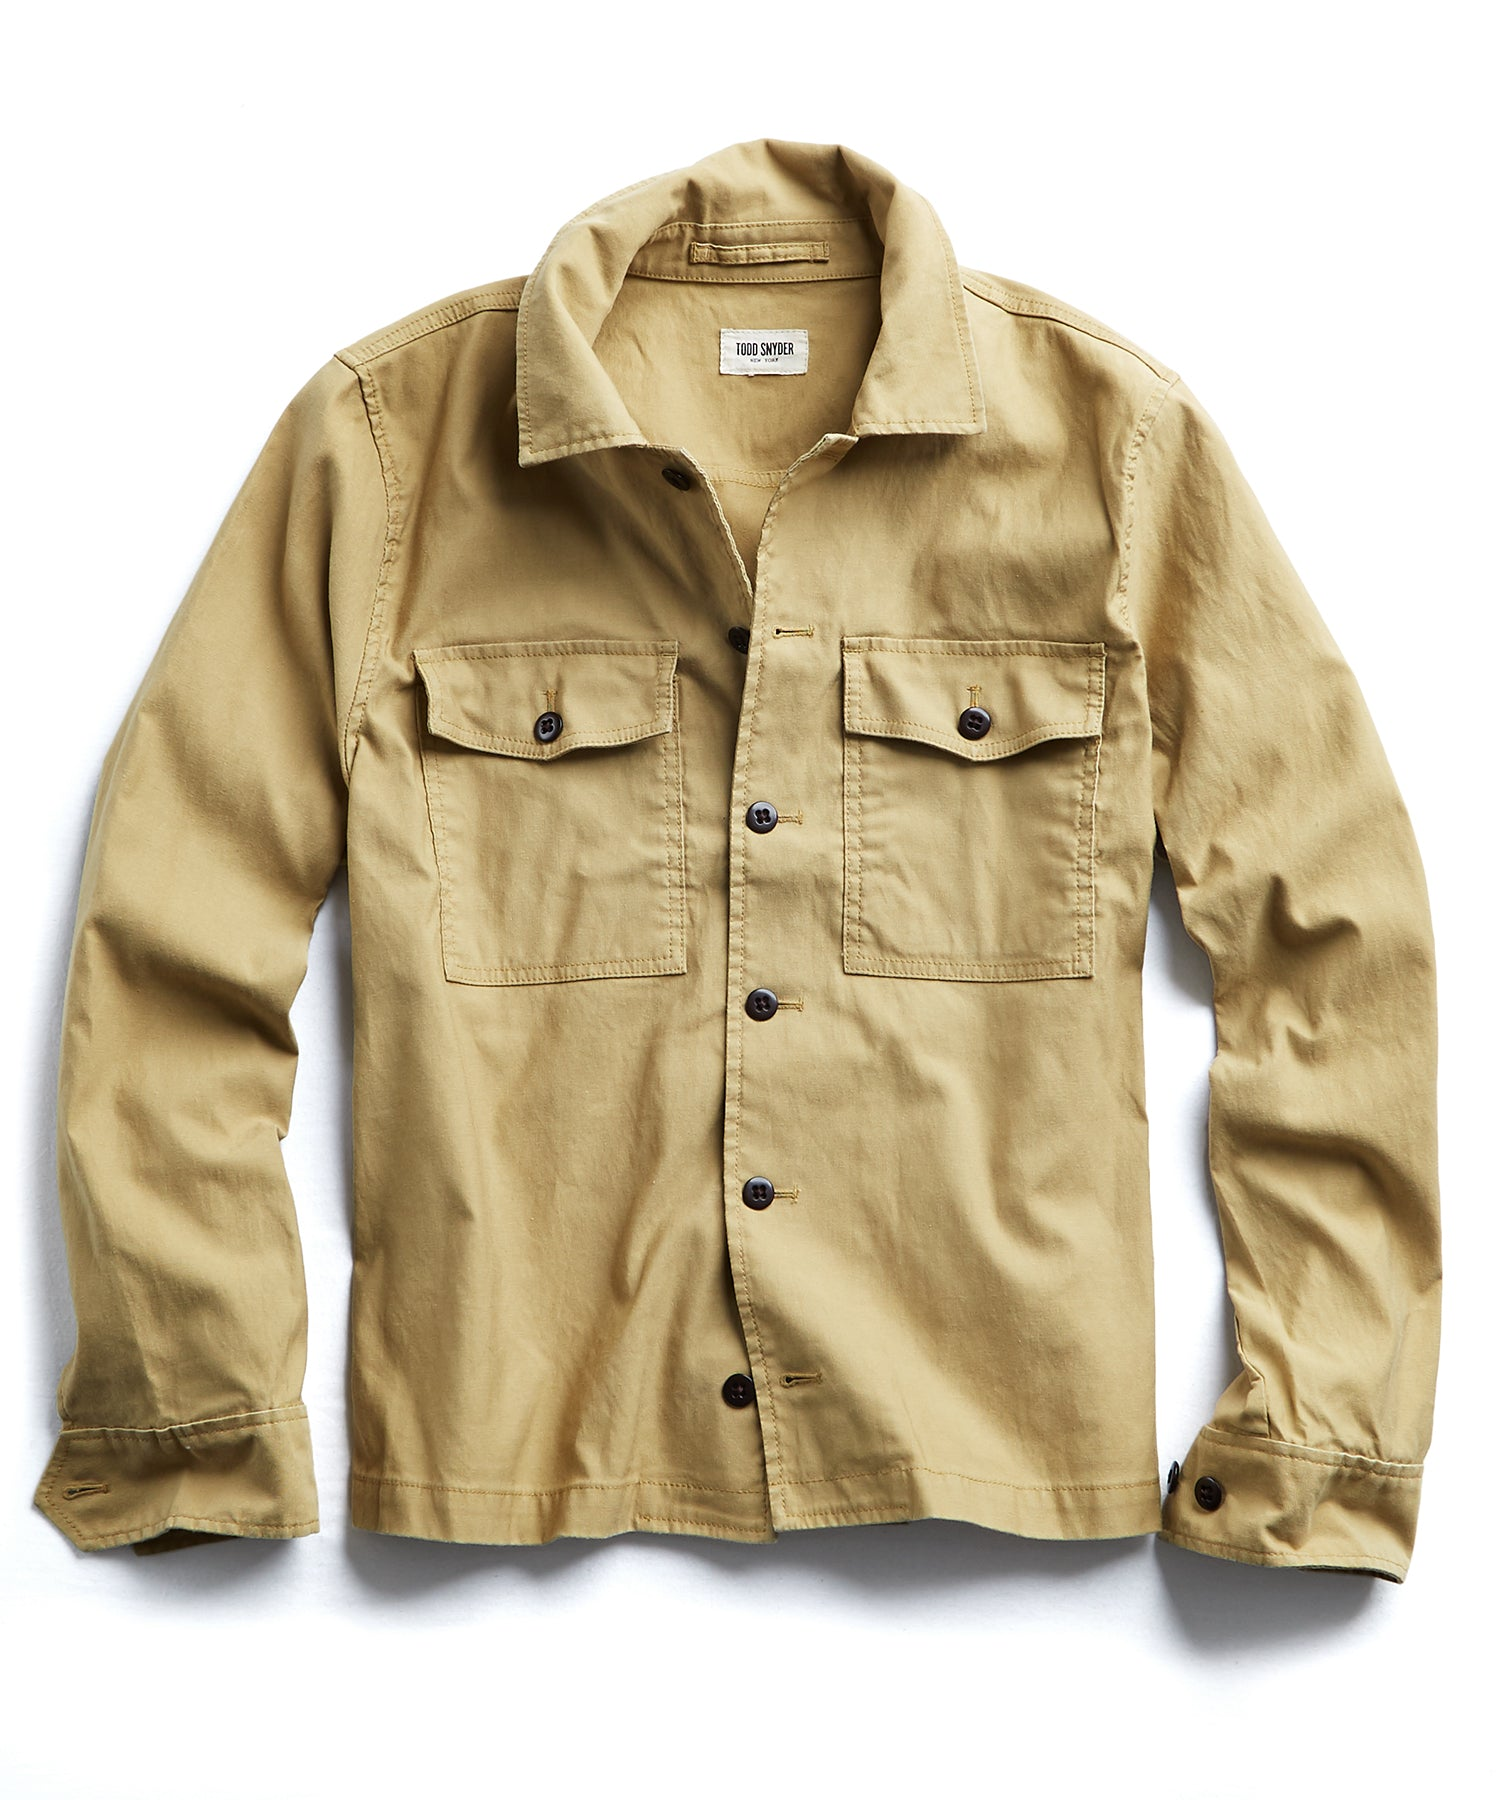 CPO Overshirt Jacket in Khaki